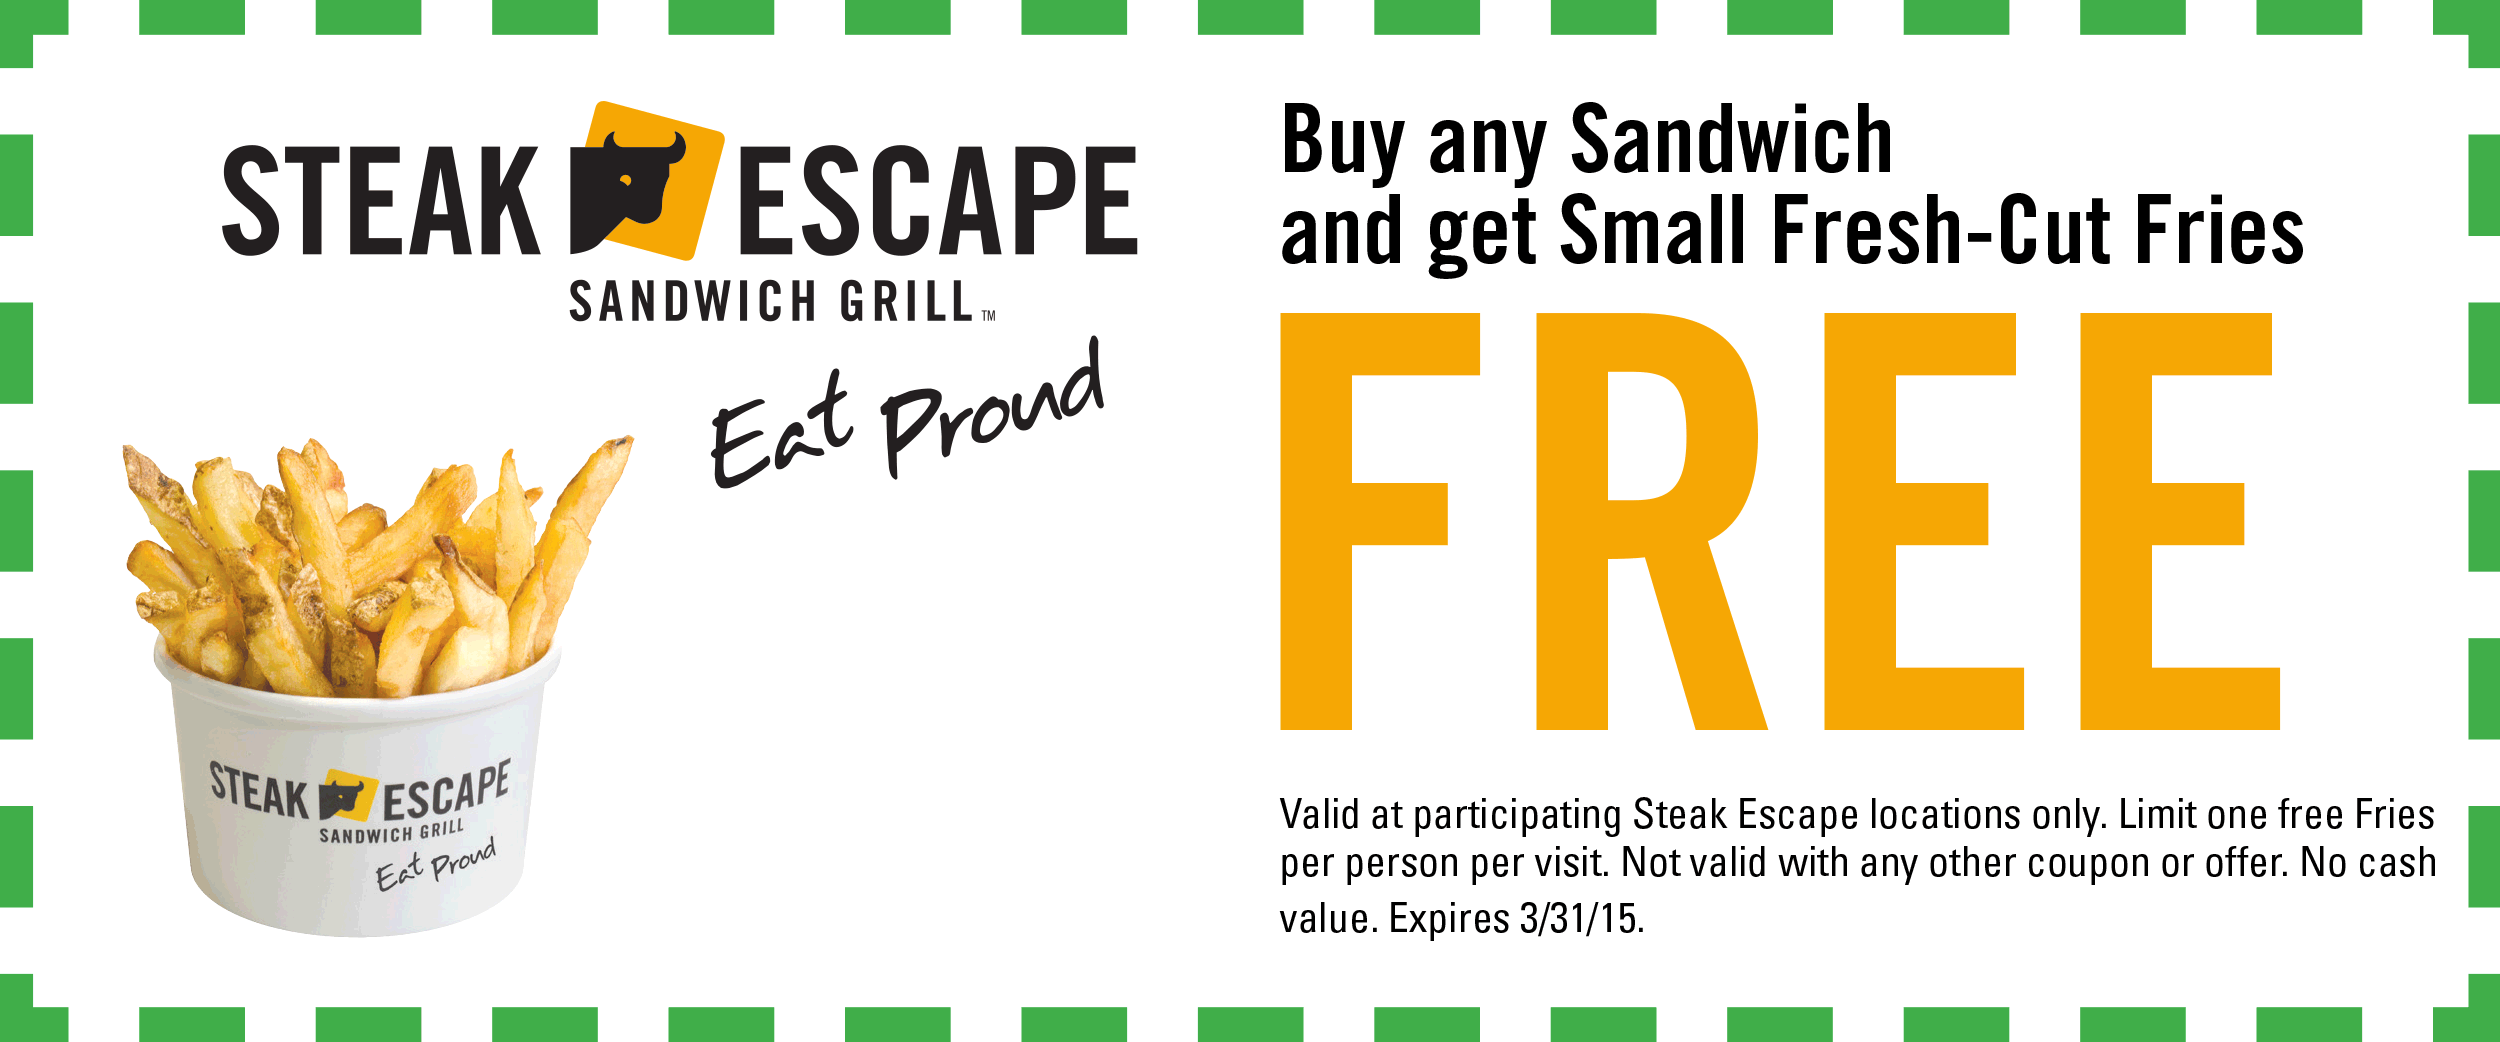 Steak Escape Coupon May 2017 Free fries with your sandwich at Steak Escape sandwich grill